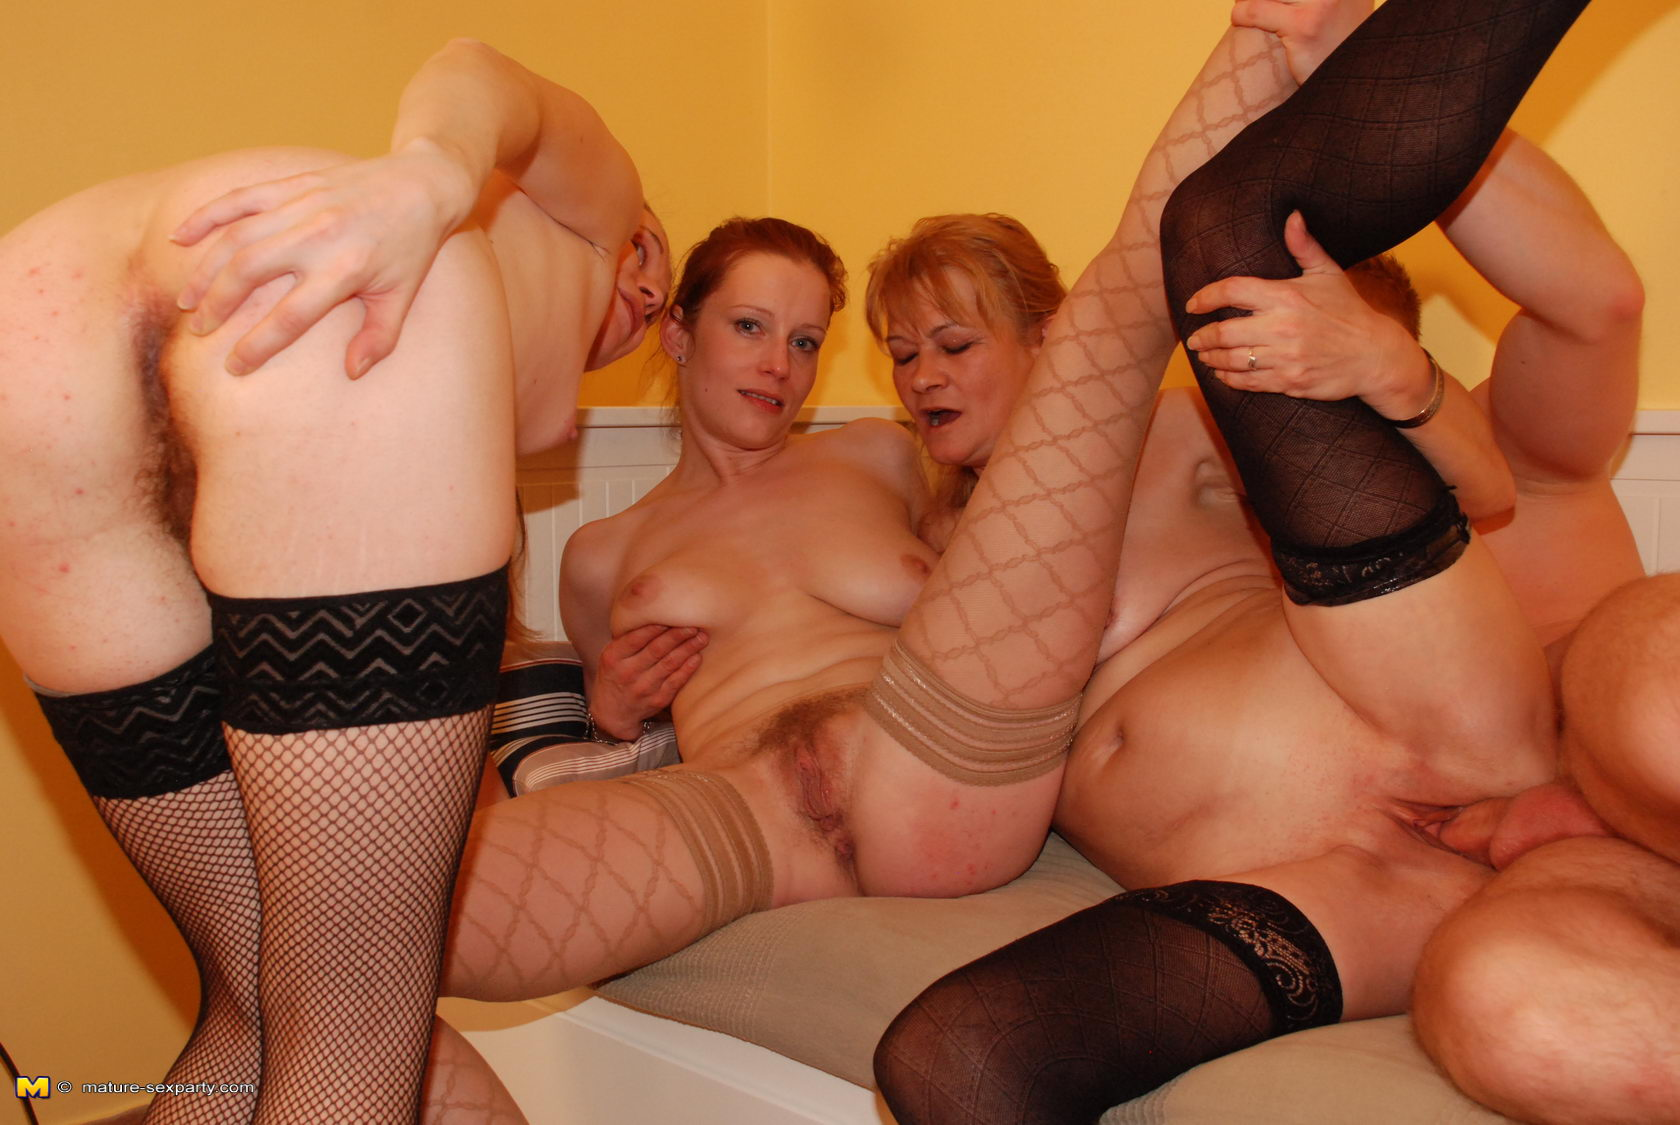 Orgy party pictures